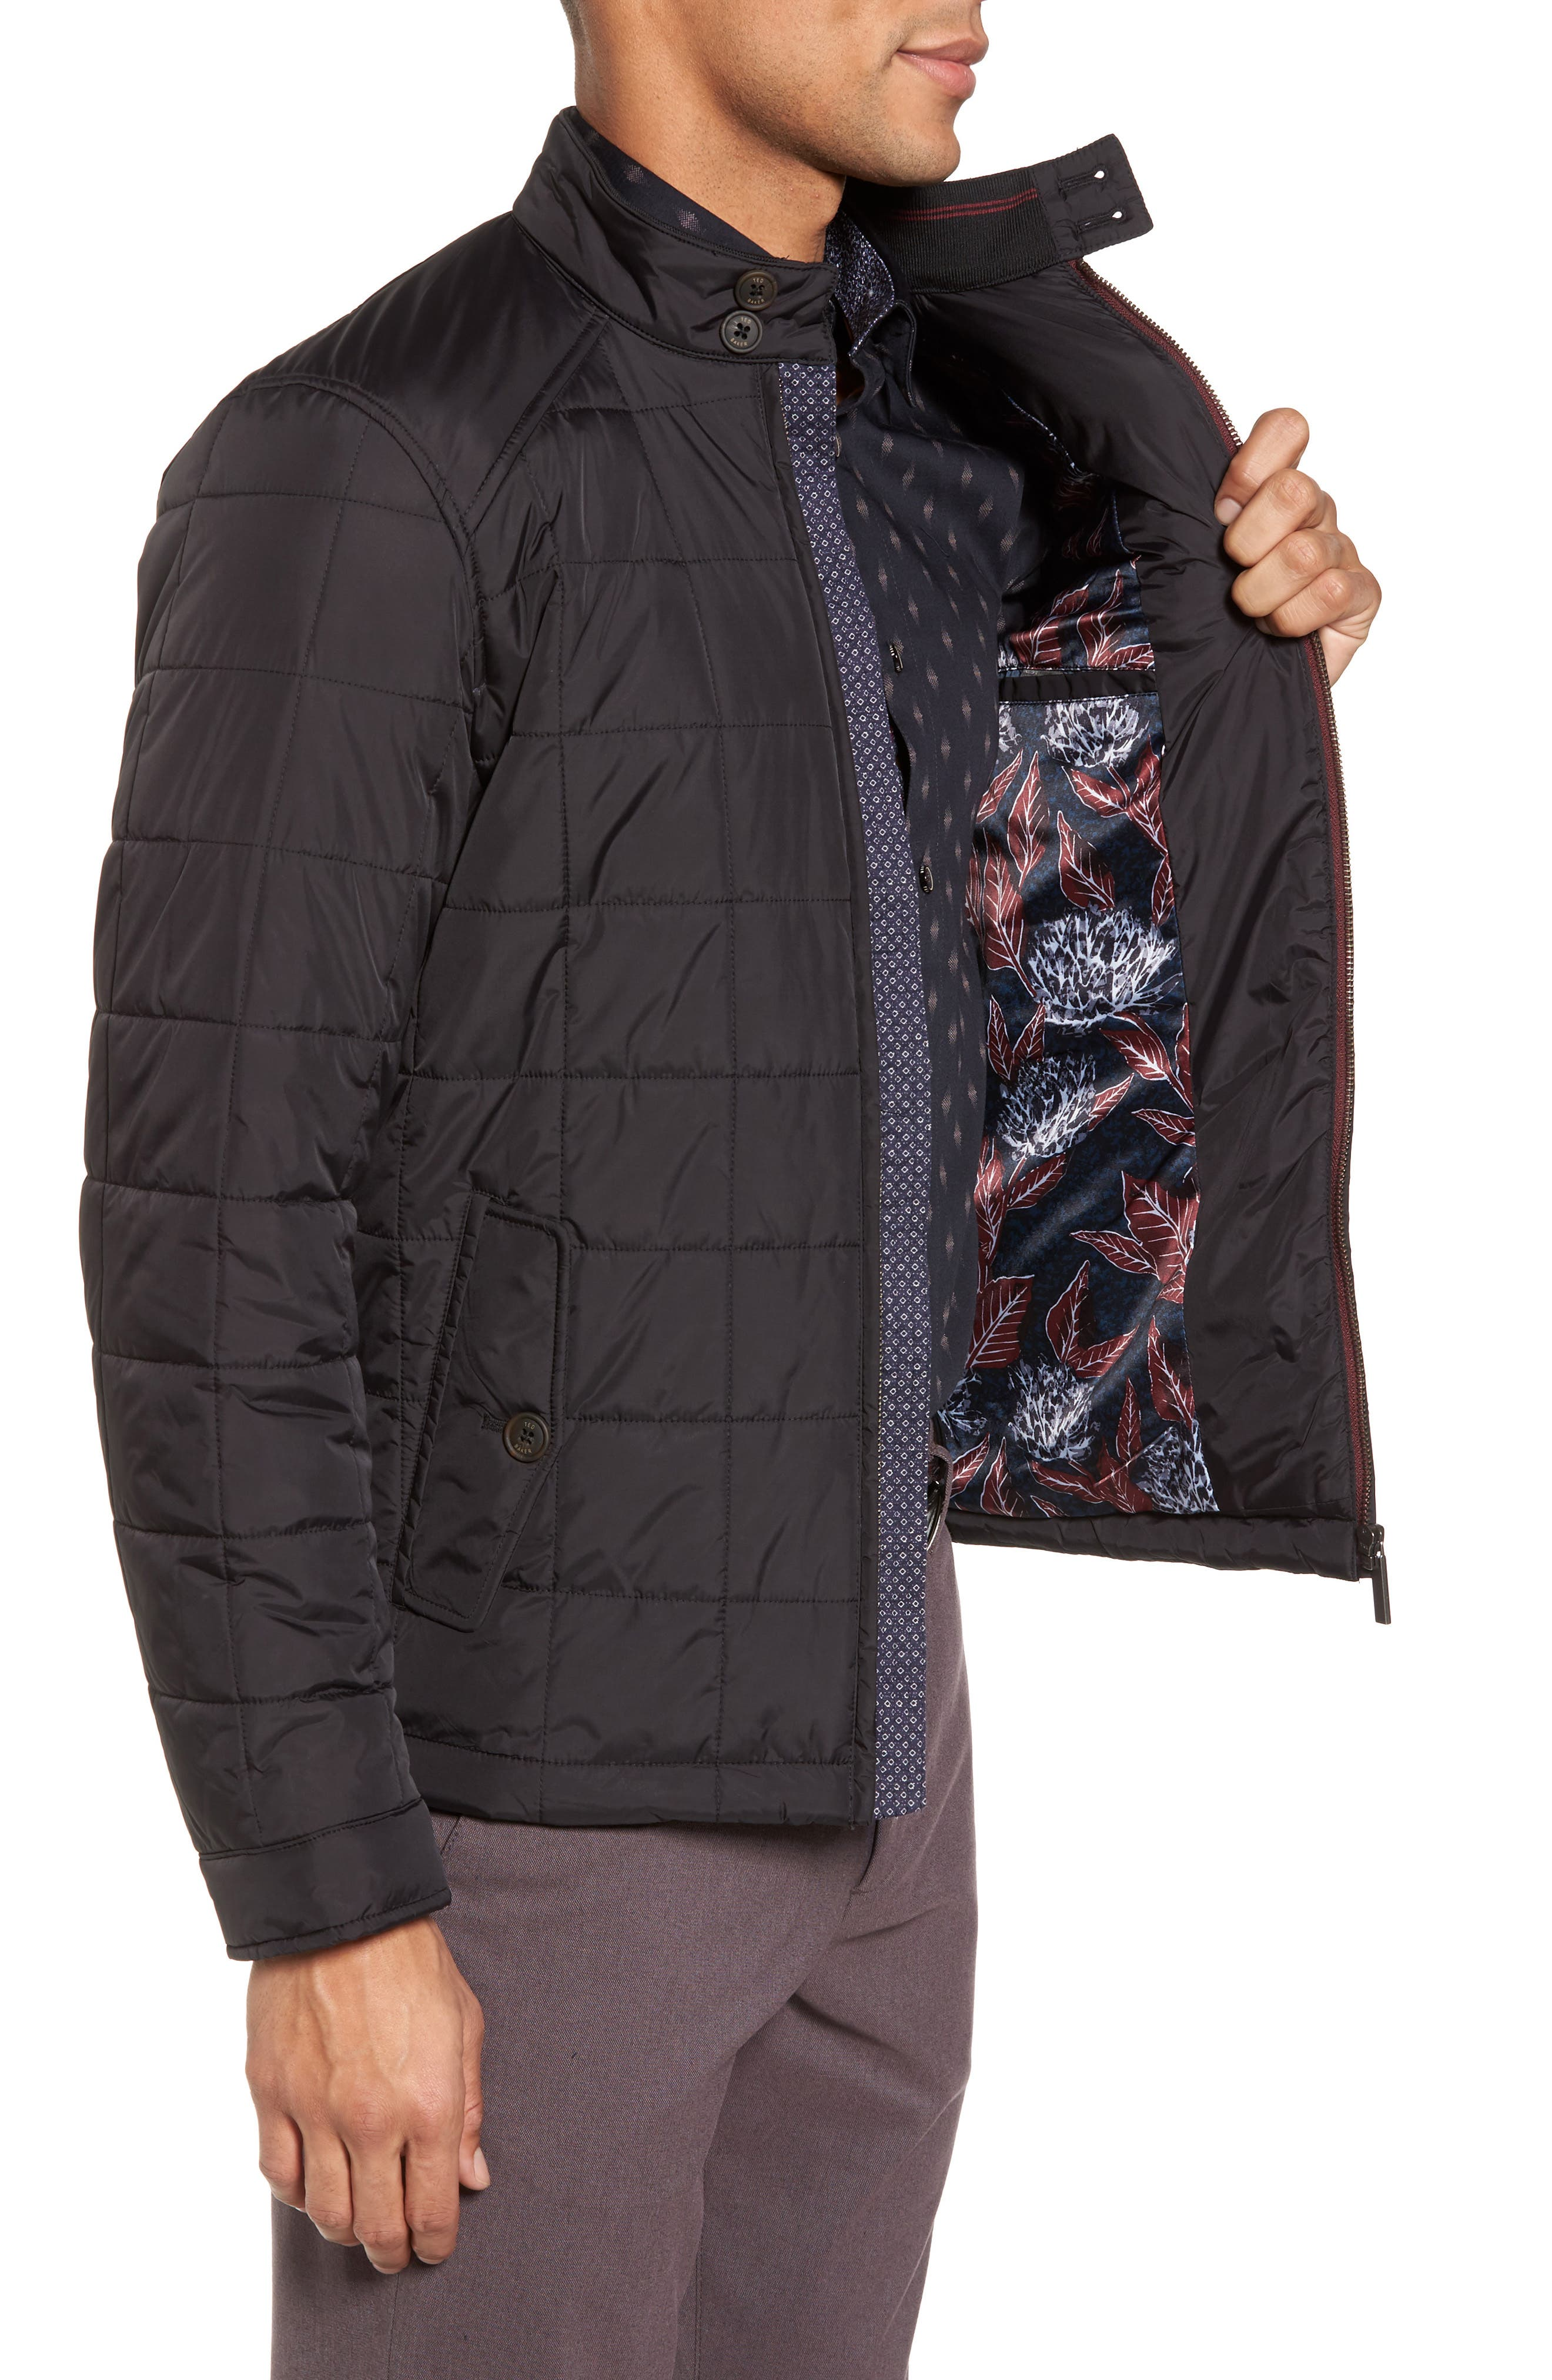 Alees Trim Fit Quilted Jacket,                             Alternate thumbnail 3, color,                             001